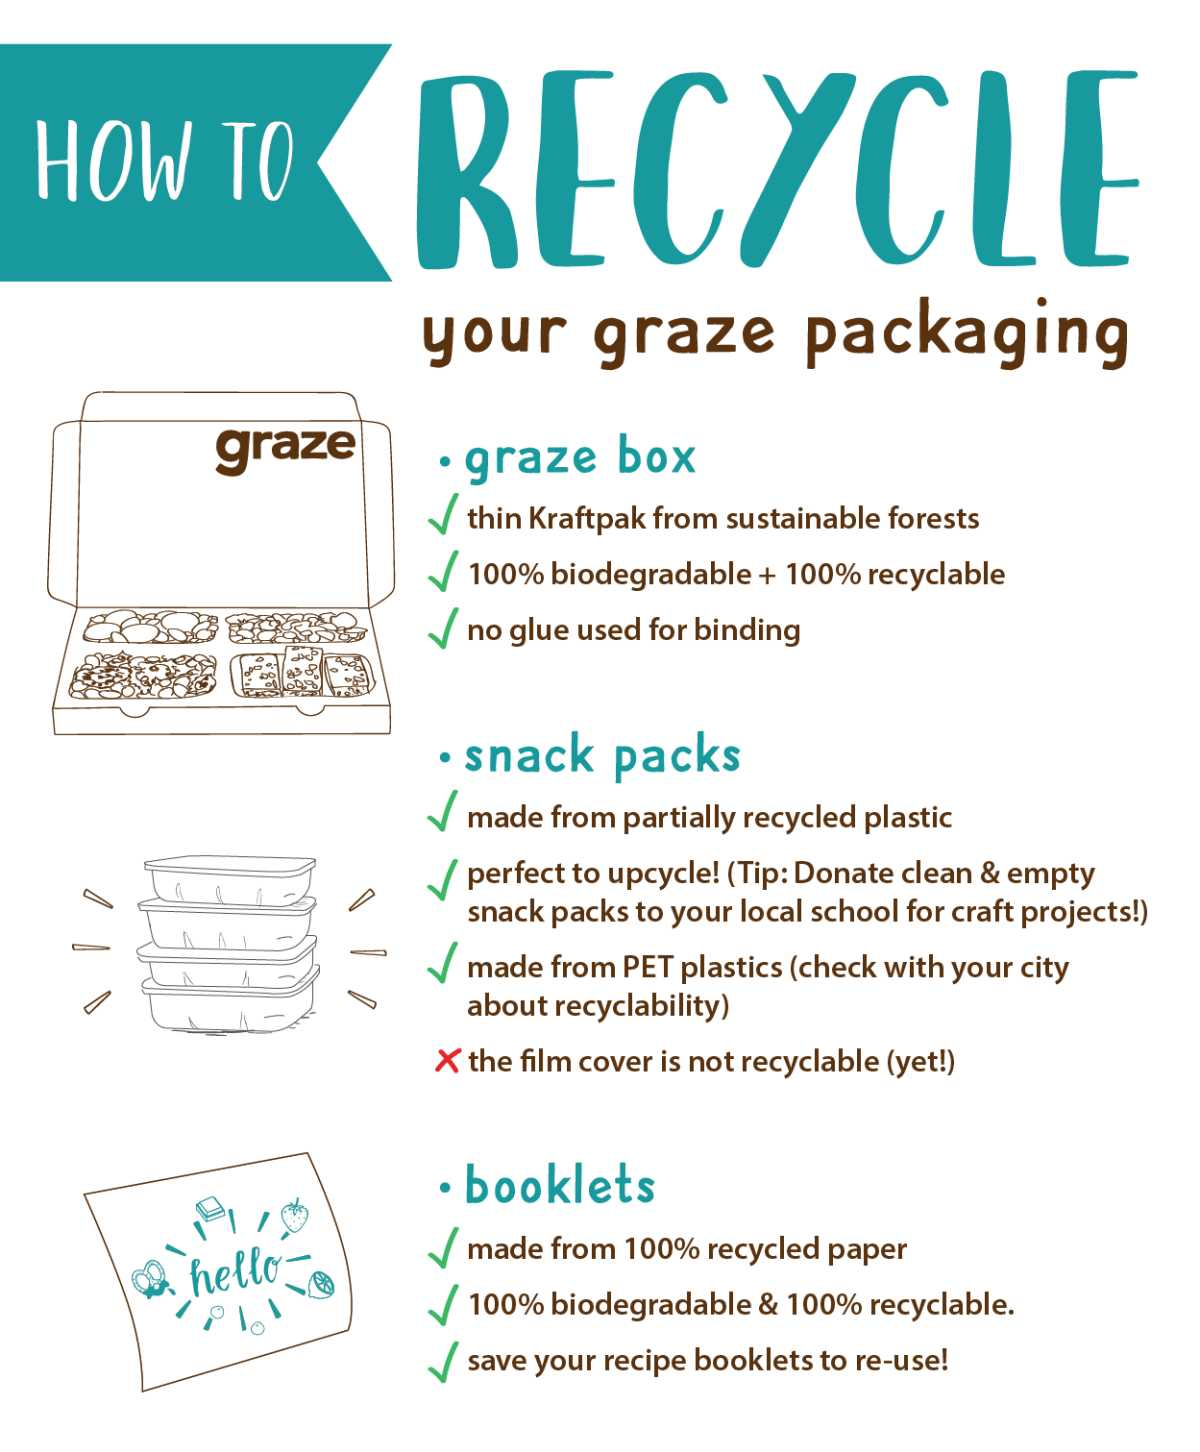 how to recycle graze packaging infographic